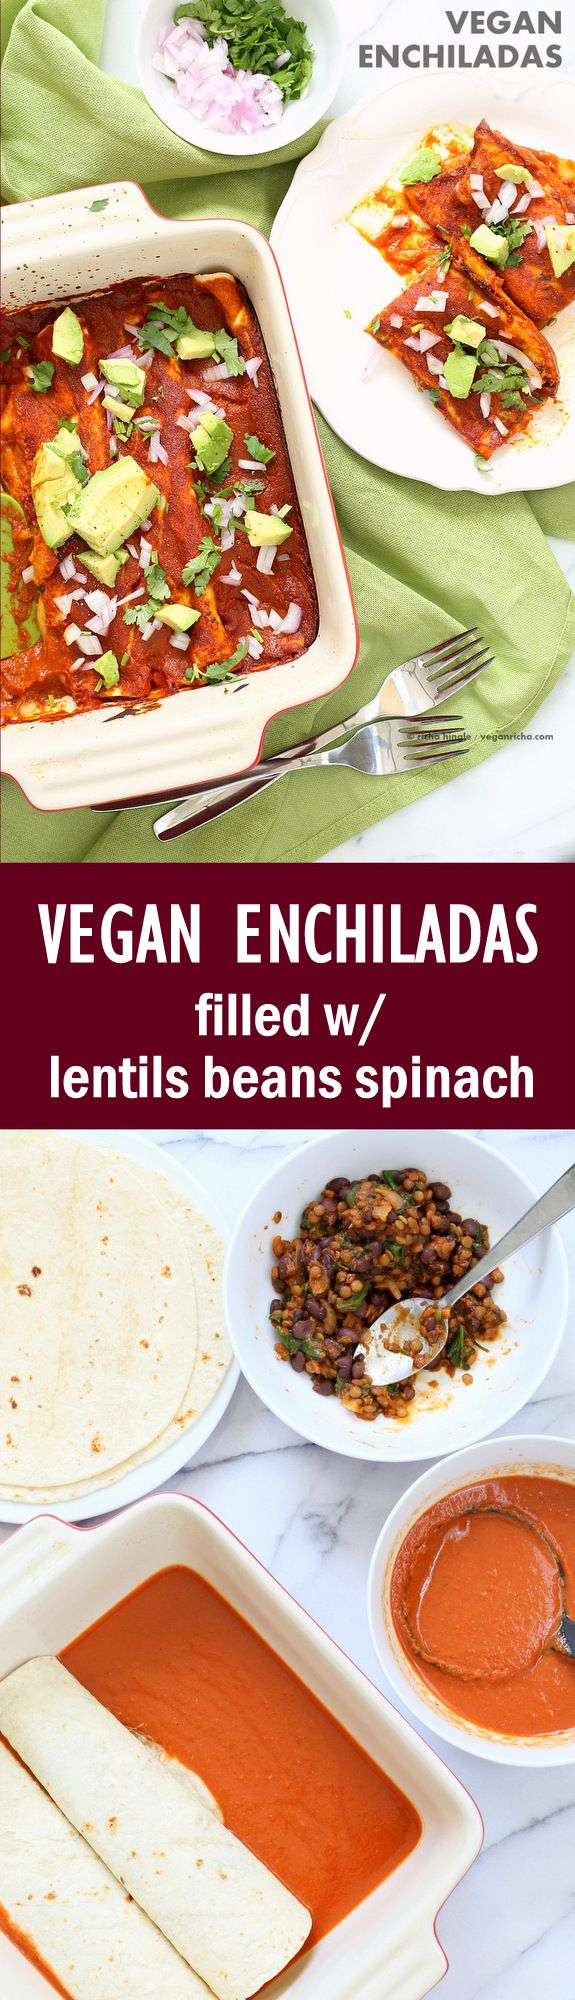 Vegan Enchiladas Recipe. Easy Enchilada Recipe with Blender Enchilada Sauce, soft tortillas filled with Black beans and Lentils. #Vegan #Soyfree Recipe. Can be #Glutenfree. Ready within One Hour | VeganRicha.com